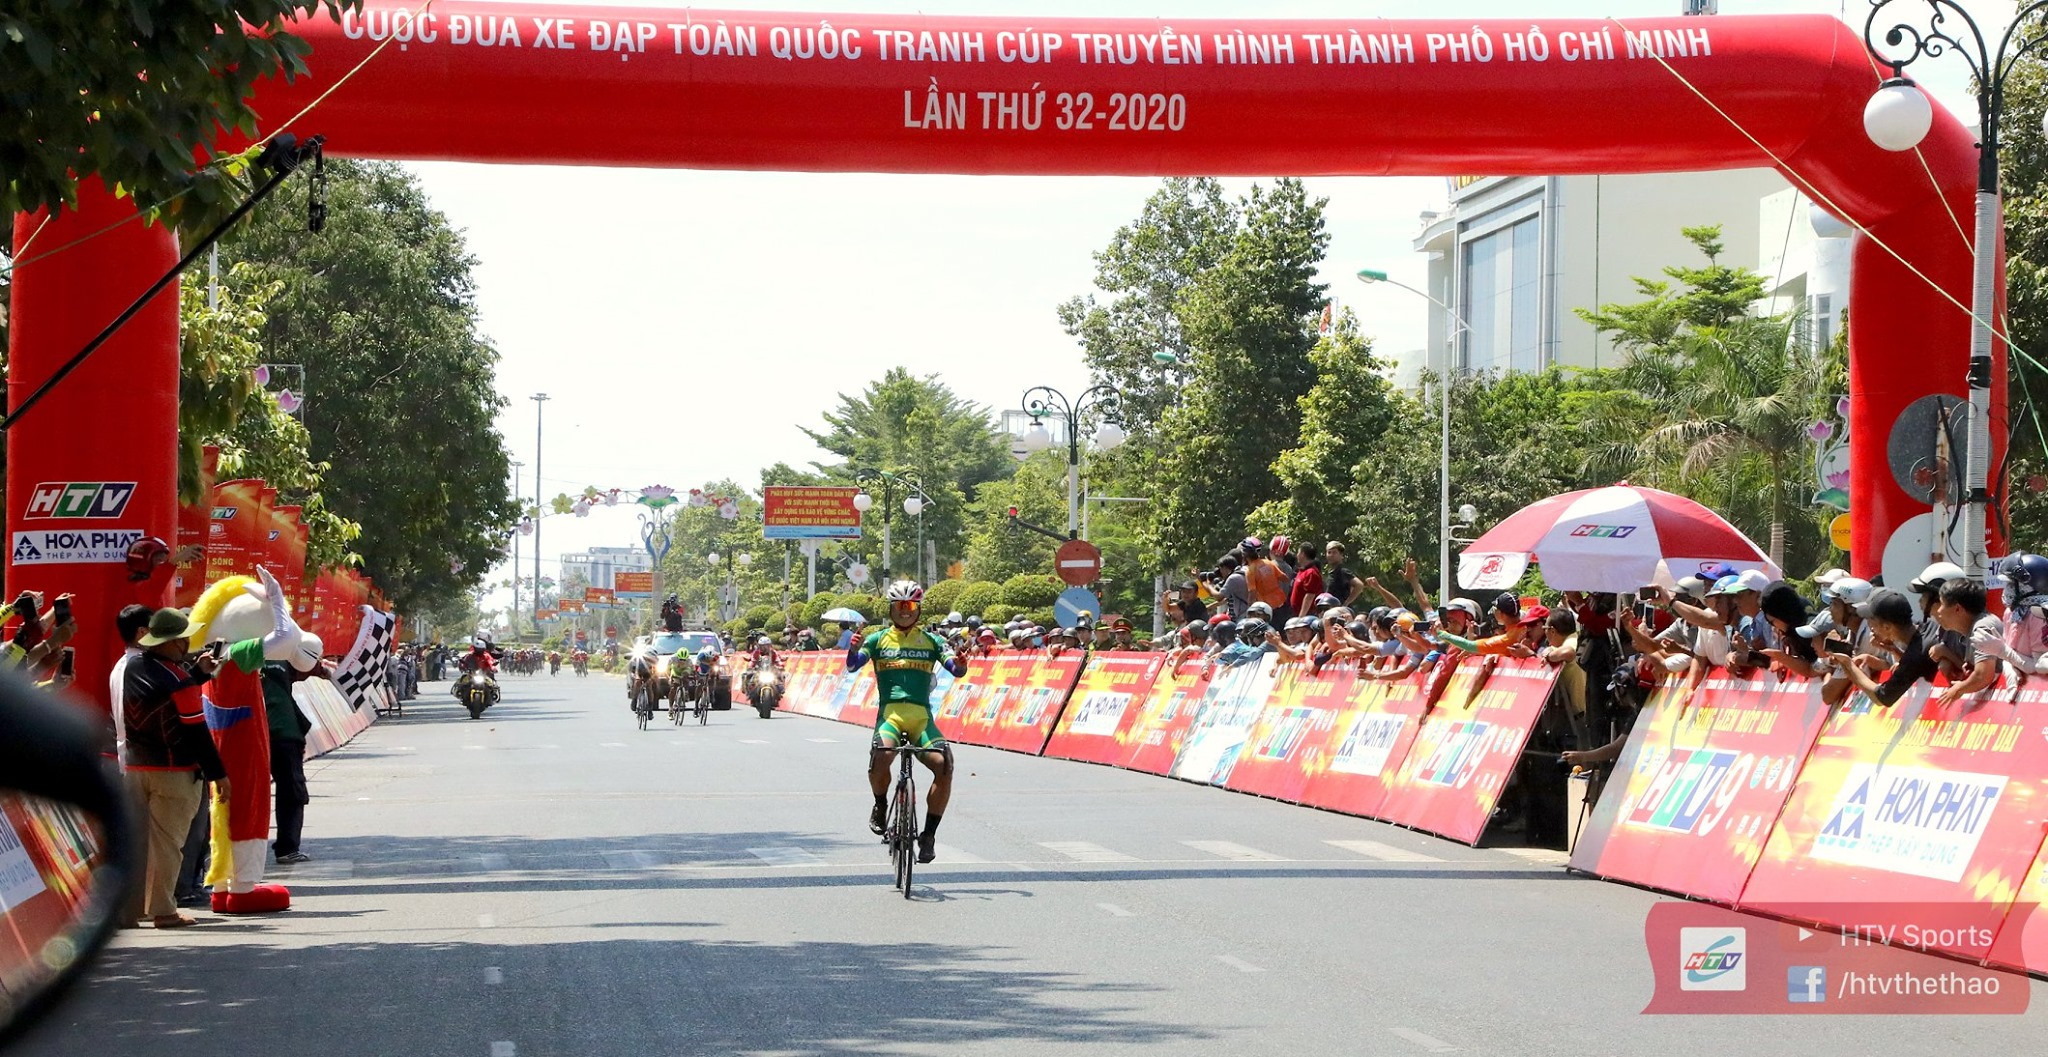 A cyclist celebrates as he crossed the finish line in Ninh Thuan Province, located in south-central Vietnam, in the 14th stage of the annual HTV Cup organized by Ho Chi Minh City Television, June 3, 2020. Photo: HTV